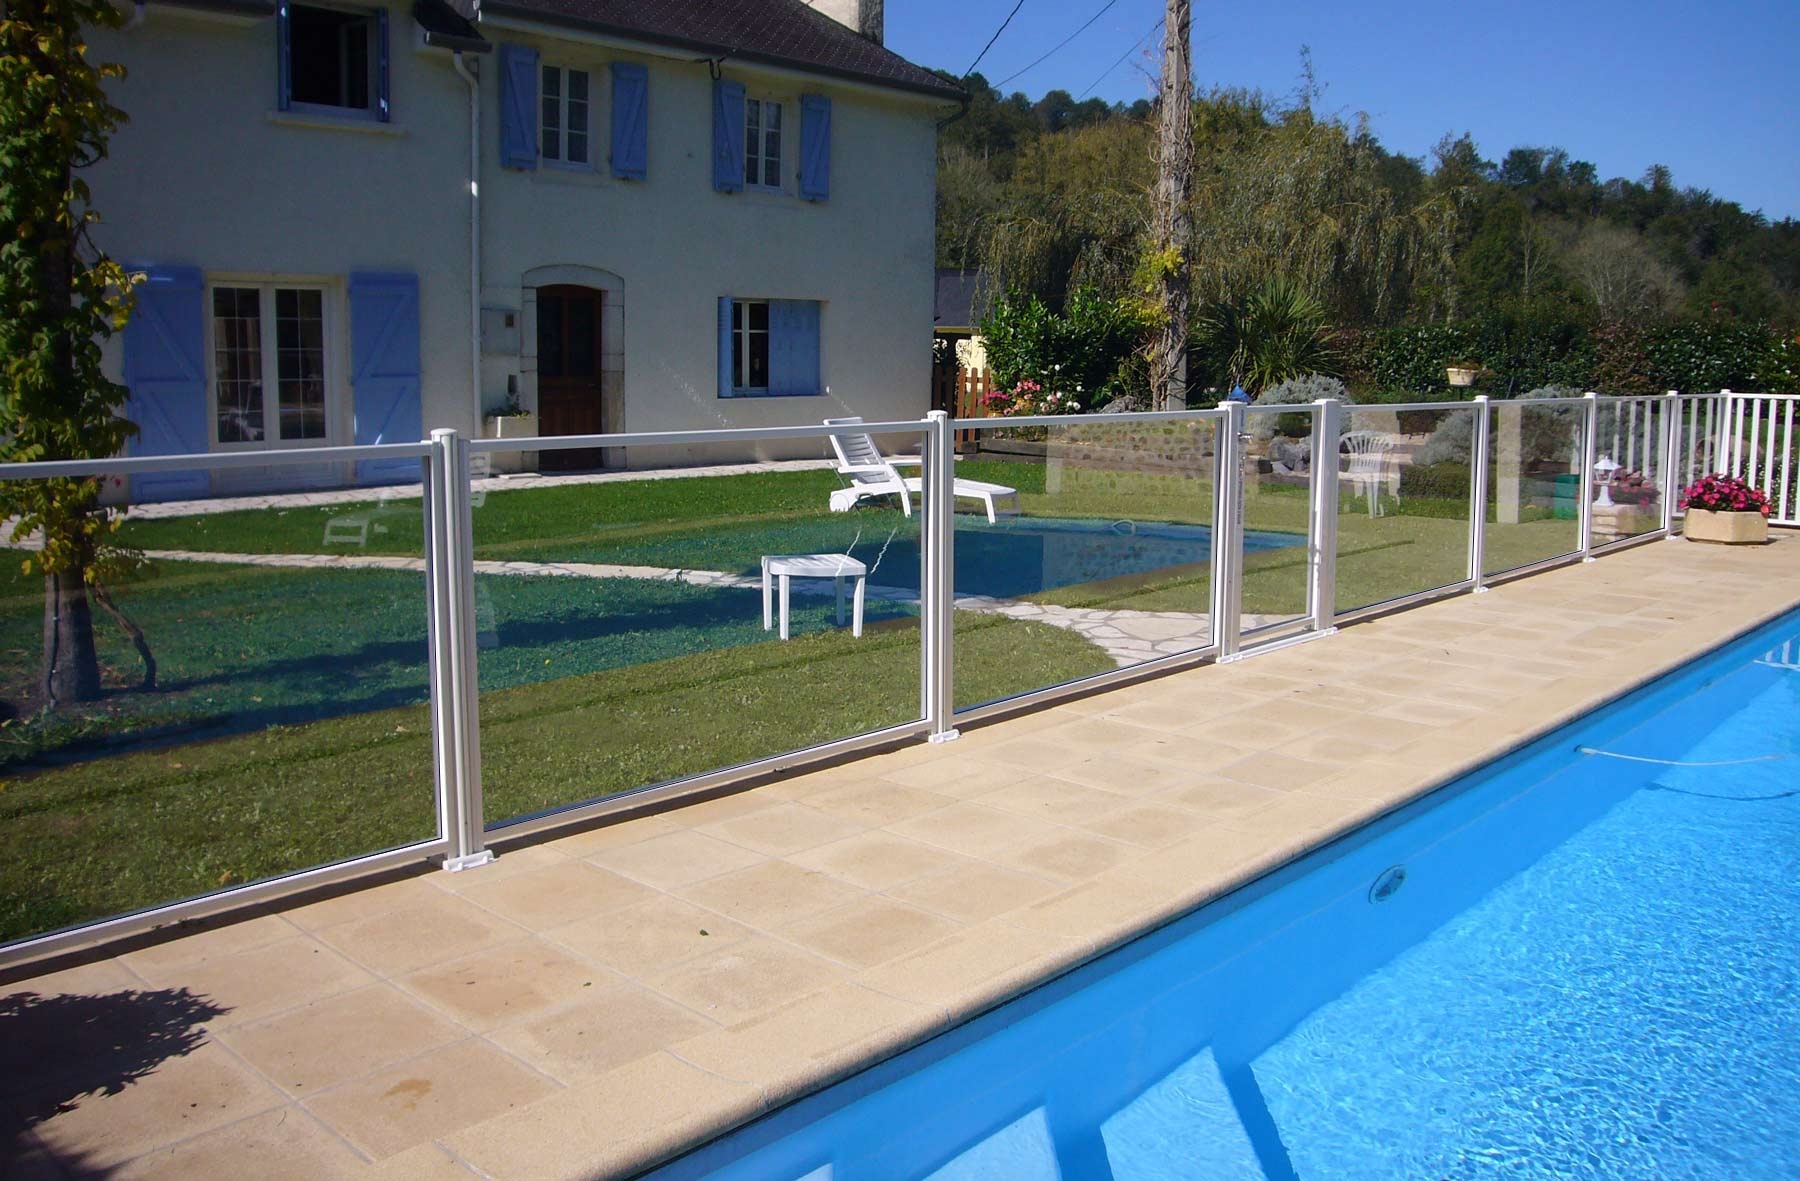 Les barri res en verre de protection d 39 atlantic barriere for Barrieres protection piscine